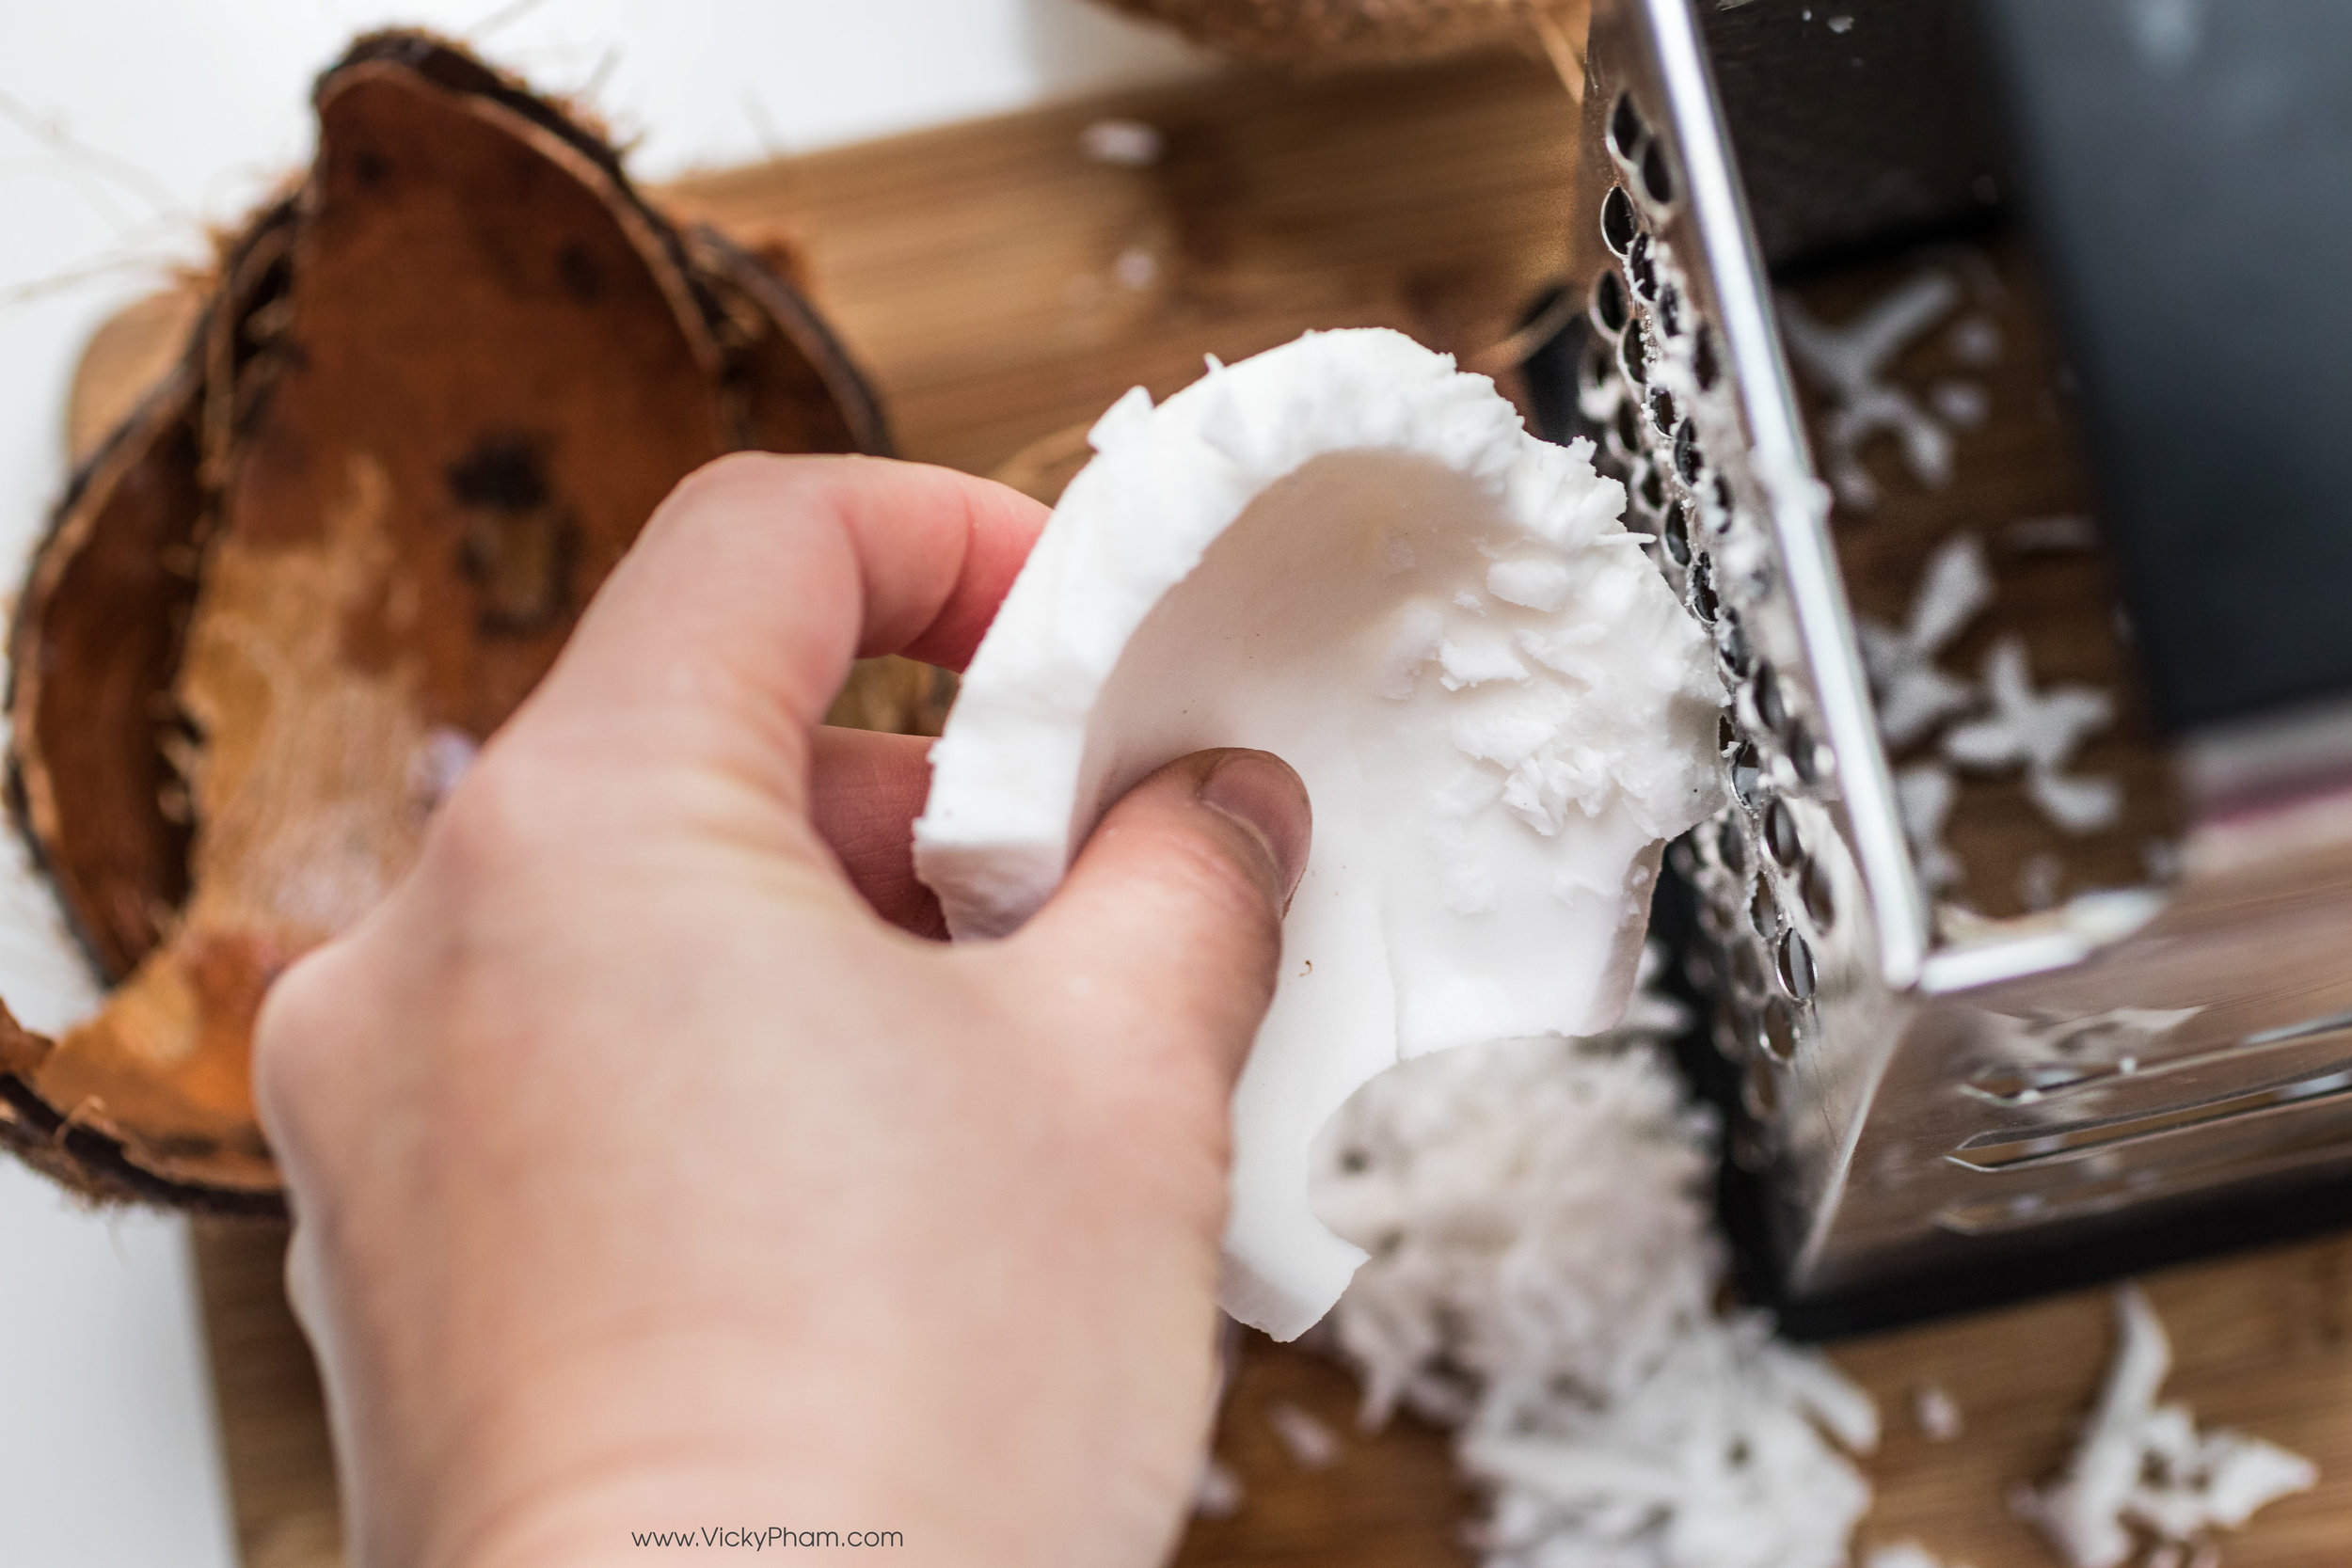 Grated my own coconut. Not recommended! If you can get unsweetened shredded coconut at the store, DO IT (almost died).